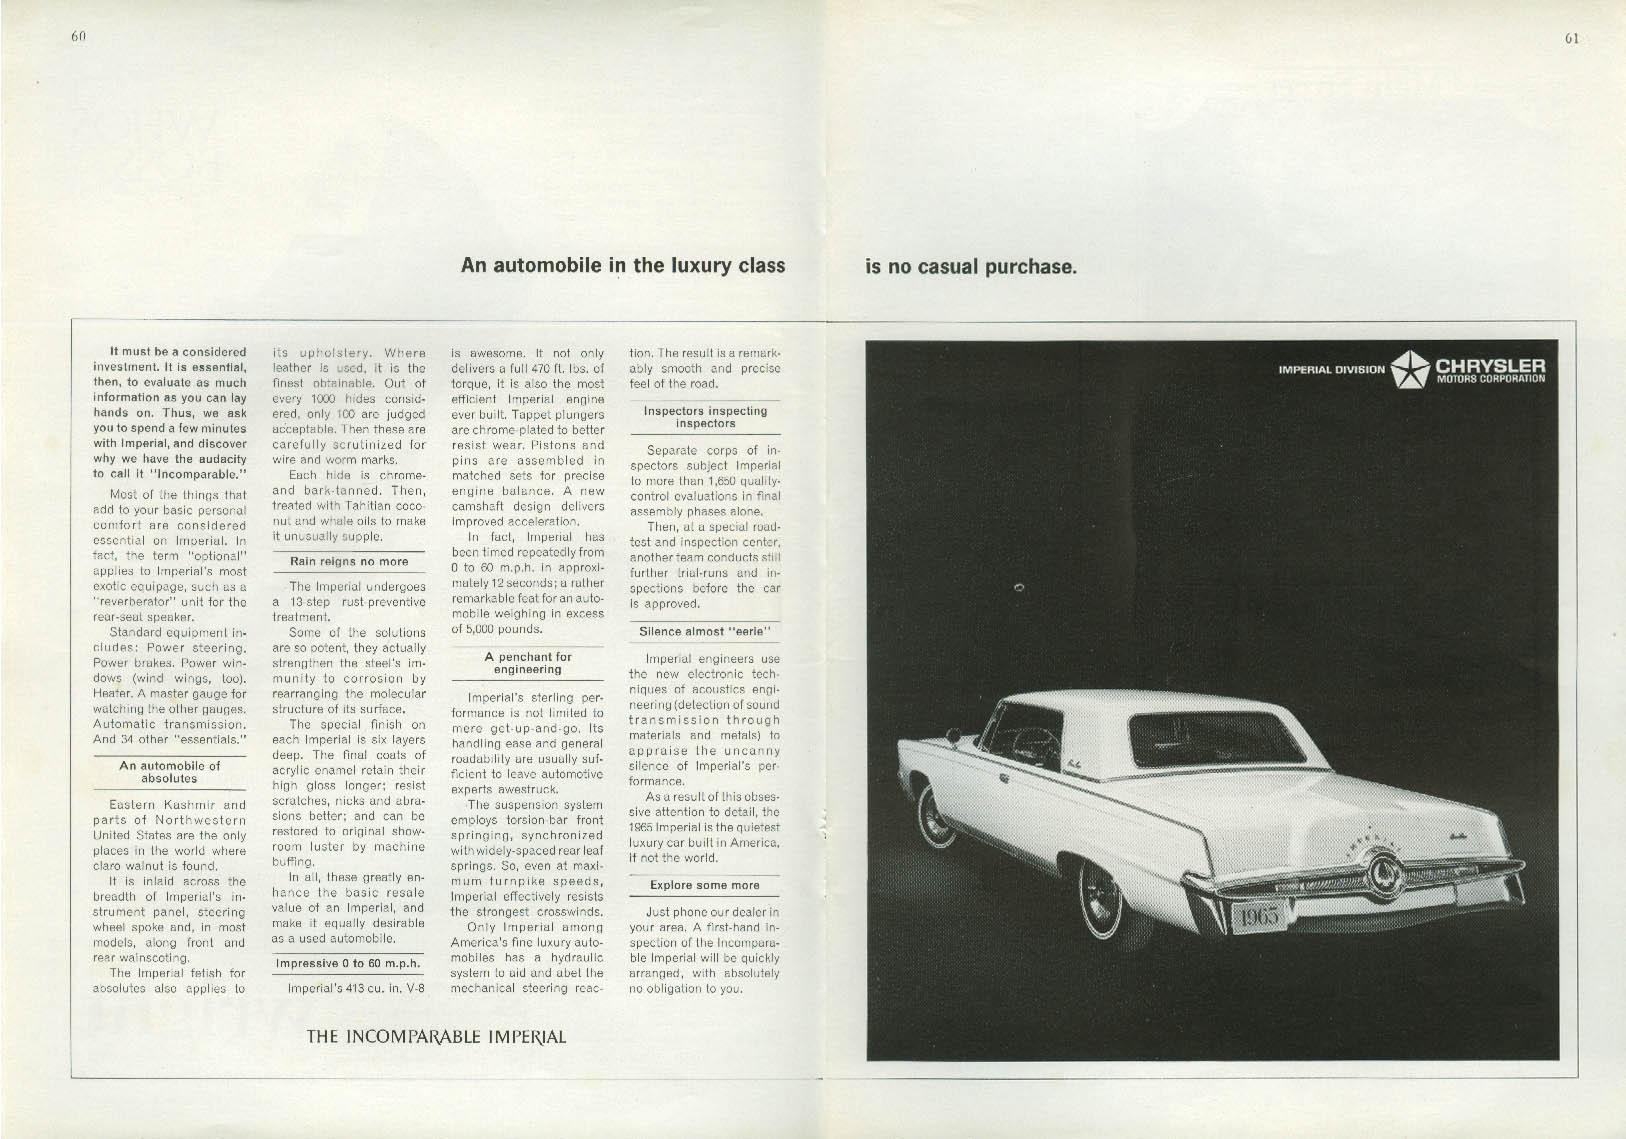 An automobile of luxury is no casual purchase Imperial by Chrysler ad 1965